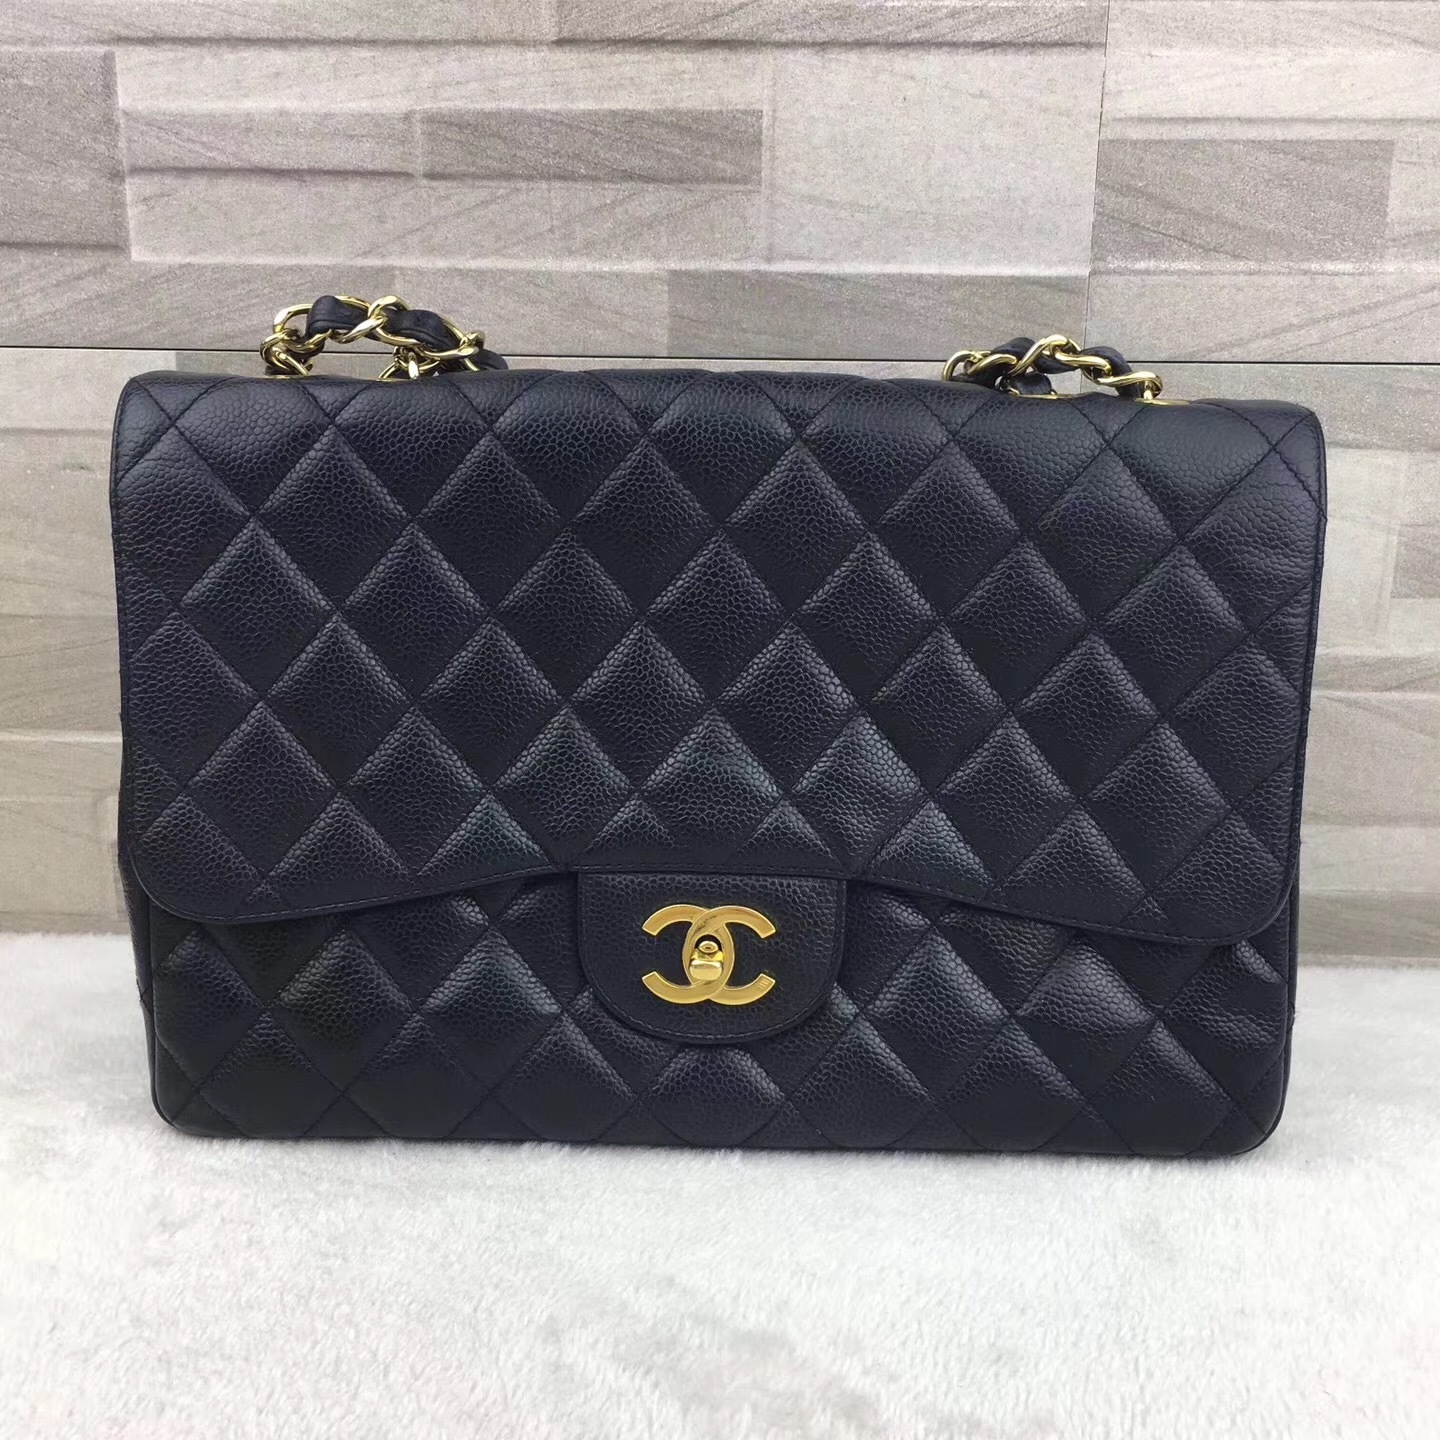 2273ec899cf1b4 Img 6562. Img 6562. Previous. AUTHENTIC CHANEL BLACK QUILTED CAVIAR JUMBO  CLASSIC FLAP BAG GOLDTONE HARDWARE